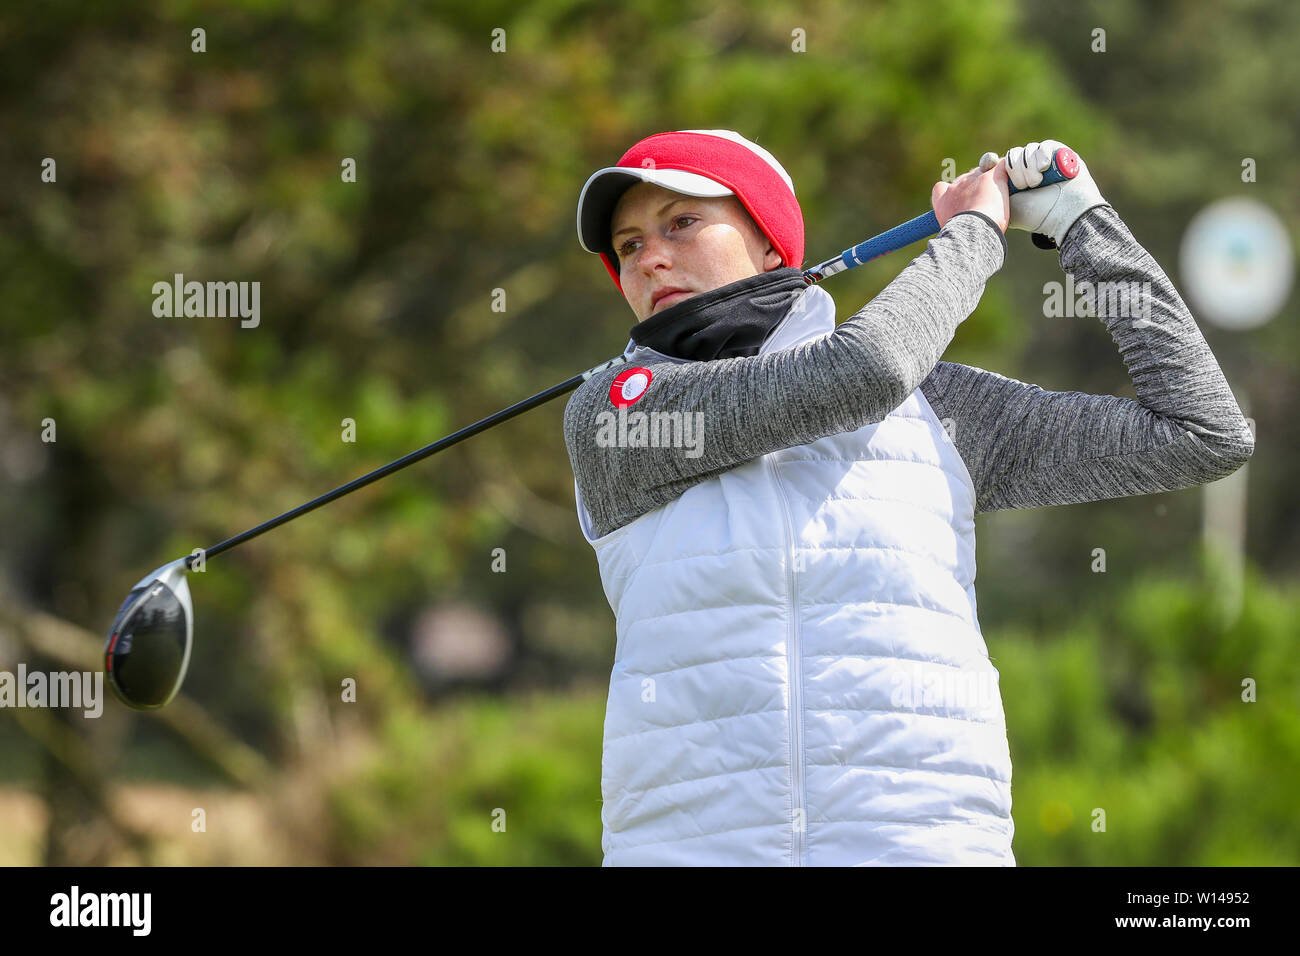 Troon, Scotland, UK. 30th June 2019. On the final day of the Competition the remaining 8 golfers, playing matchplay golf competed over Barassie Links Golf course, Troon in blustery wind and squally rain conditions to try and win the Championship Cup and the Clark Rosebowl. Image of TARA MACTAGGART representing Minto Golf Club teeing off at the 17th Credit: Findlay/Alamy Live News - Stock Image